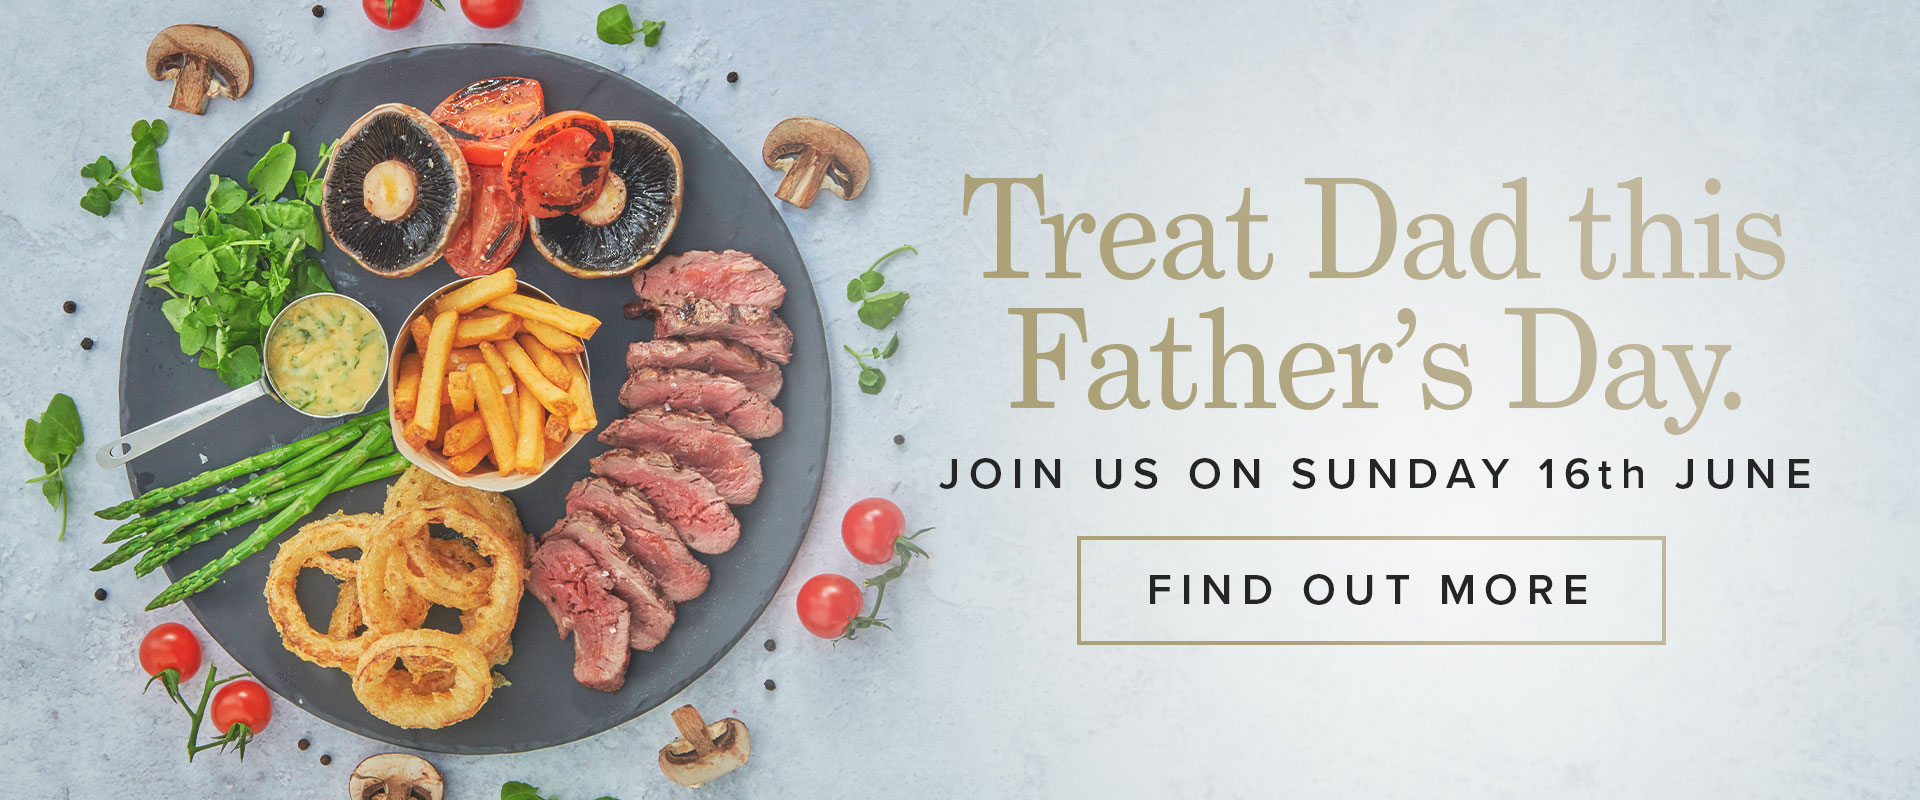 Father's Day at Browns Leeds